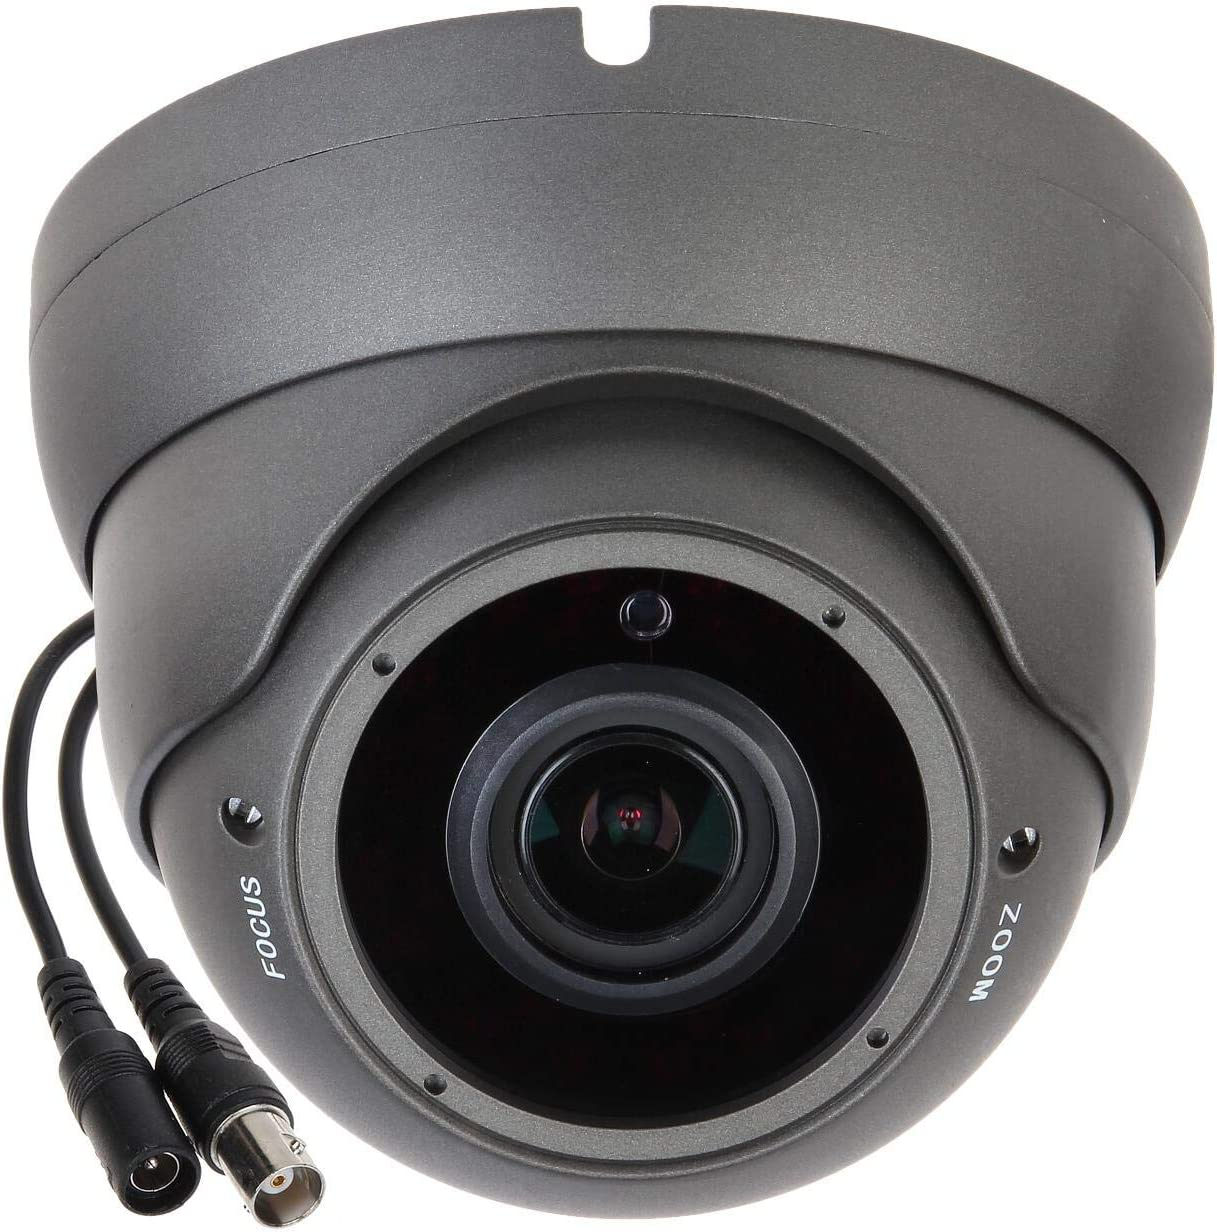 Sinis Super Hybrid 5MP Default Output 4MP 1080P HD-TVI CVI AHD 960H CCTV Surveillance Security Camera Day Night Vision Waterproof Outdoor Indoor 2.8-12mm Varifocal Lens Metal ArrayDome Video System